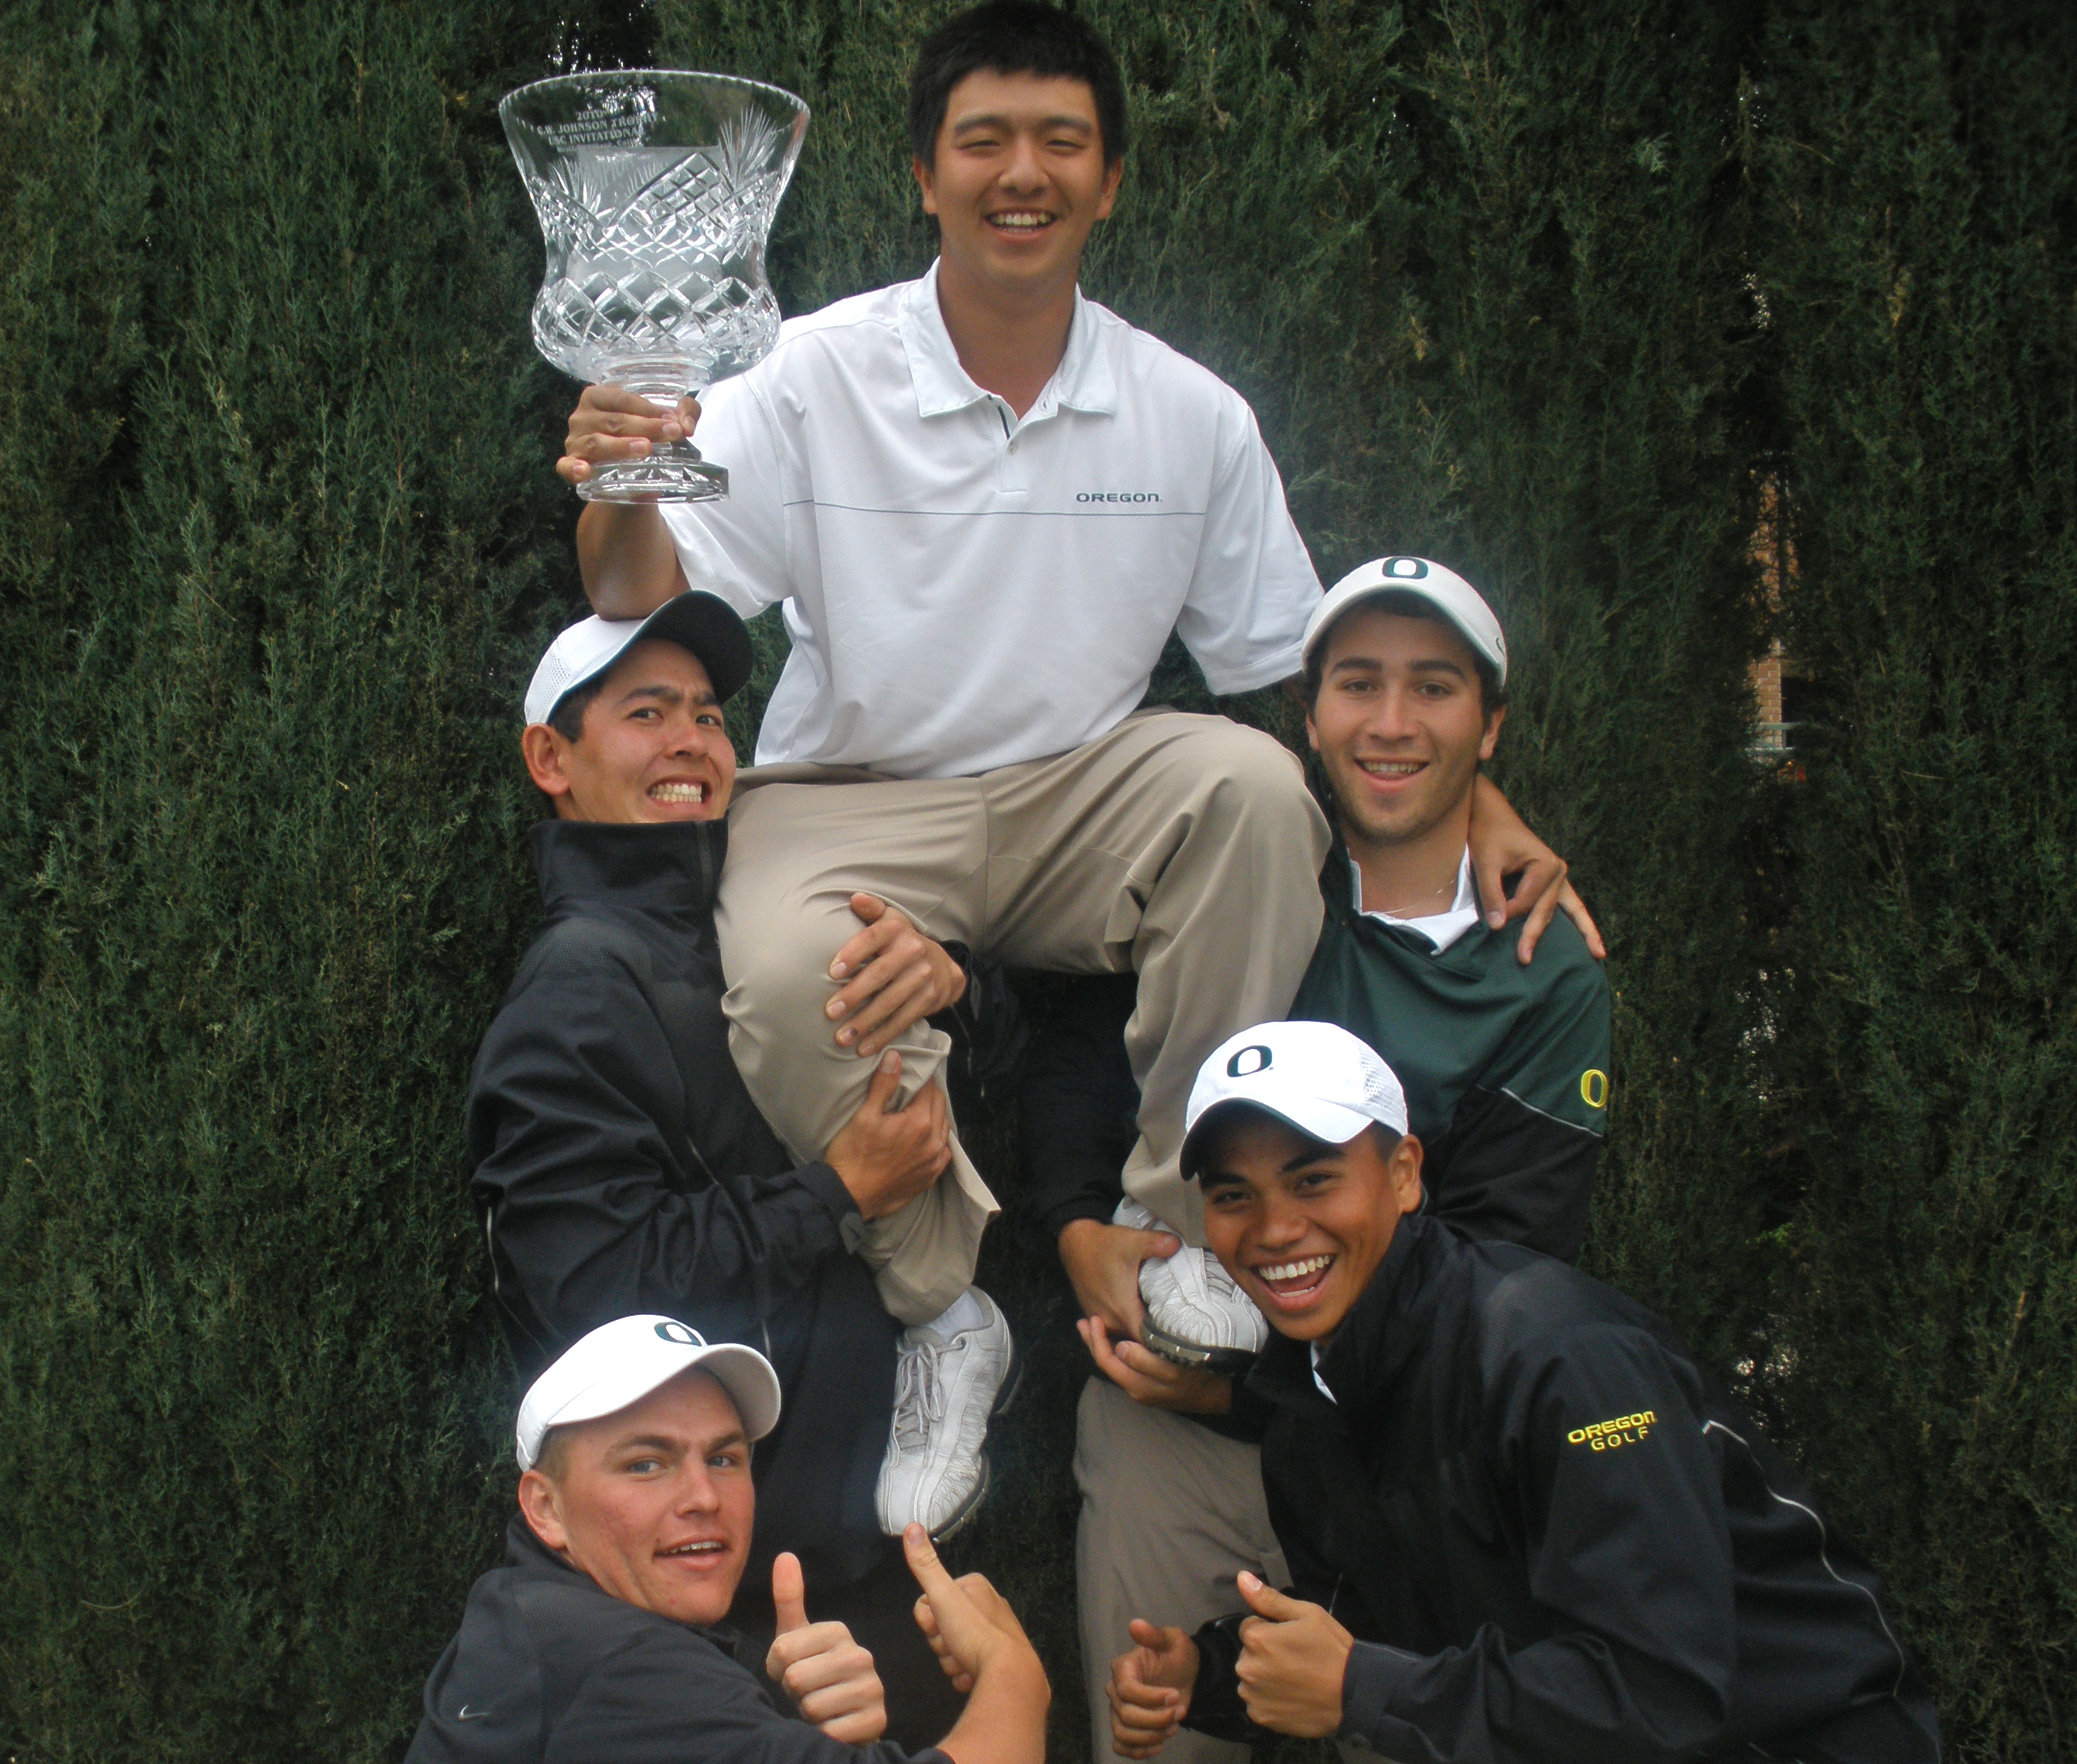 The Ducks celebrate their victory at the USC Collegiate Invitational.